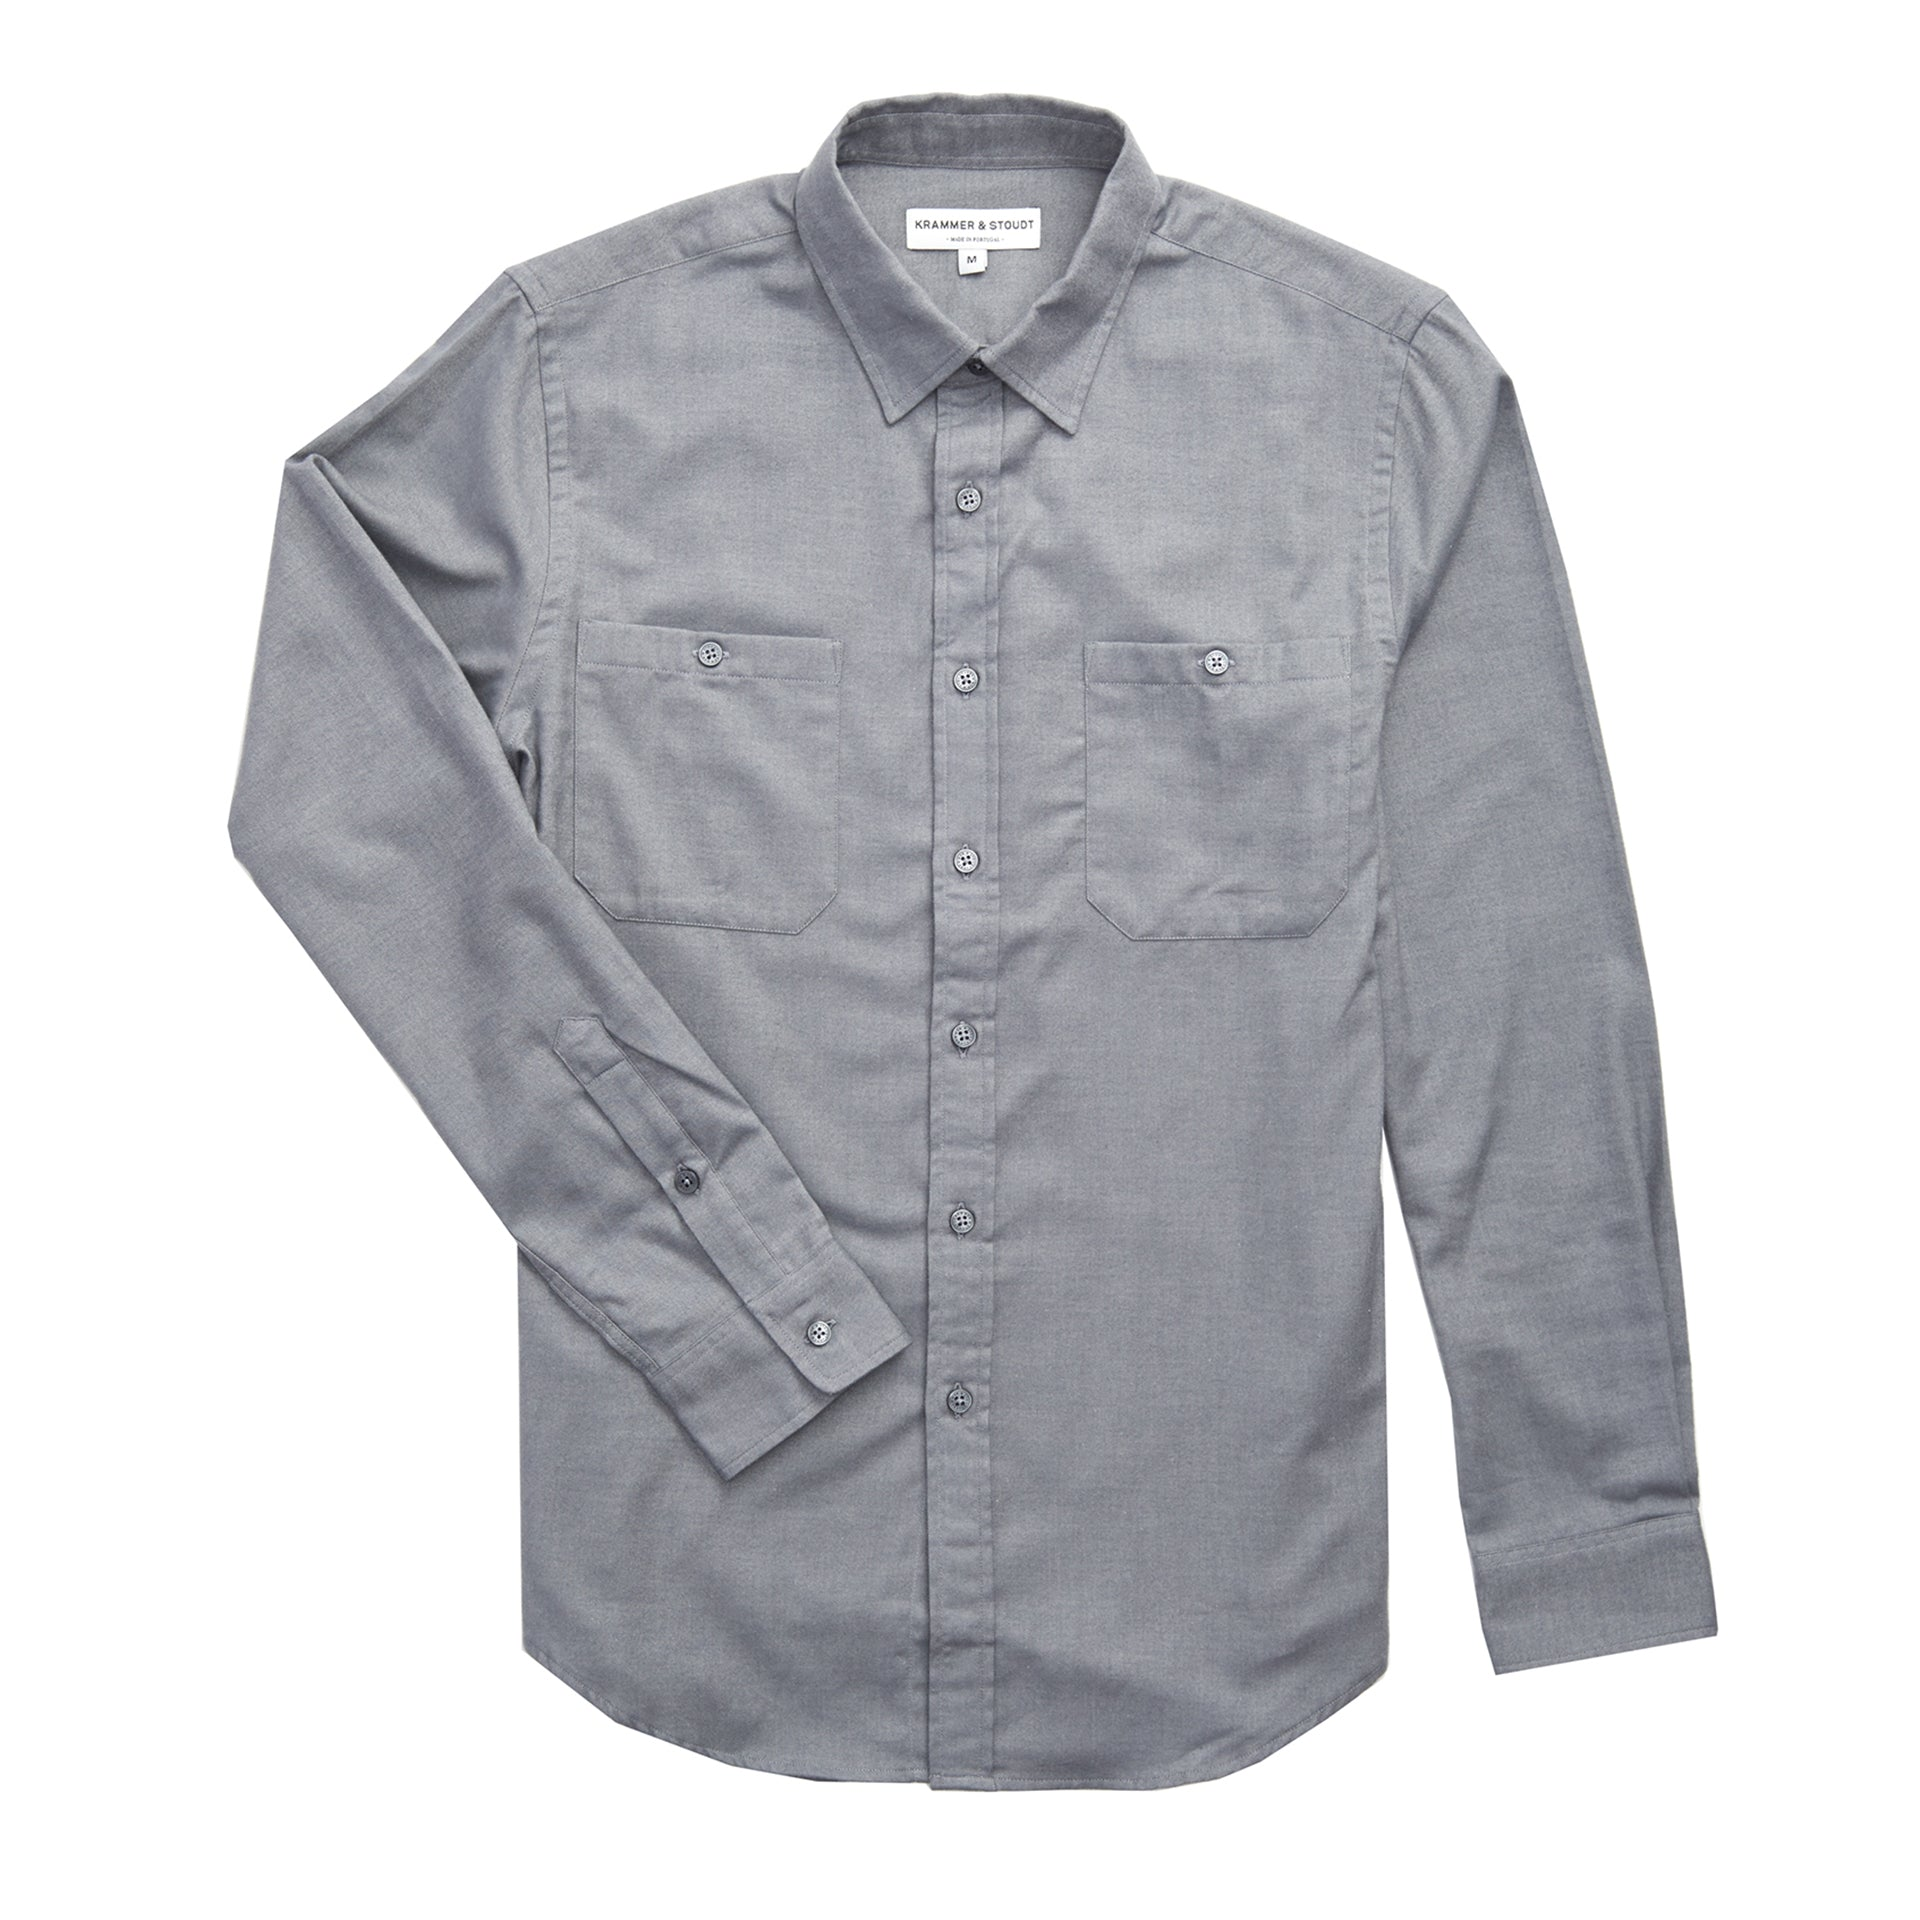 Gregory Work Shirt - Made in Portugal